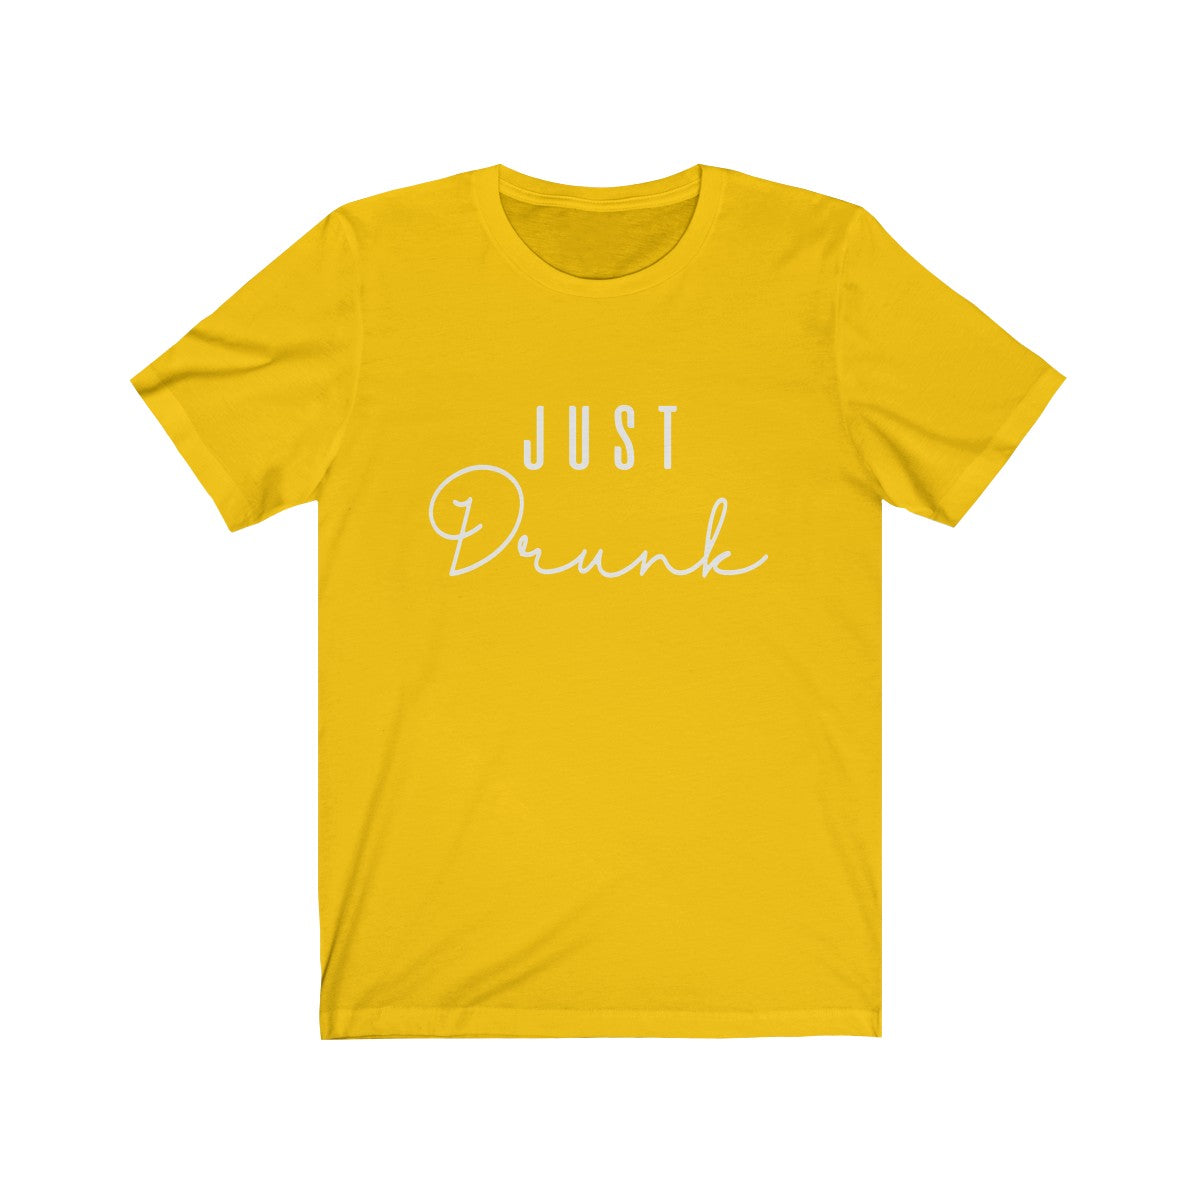 Unisex Jersey Short Sleeve Tee Just Drunk White Lettering - elrileygifts